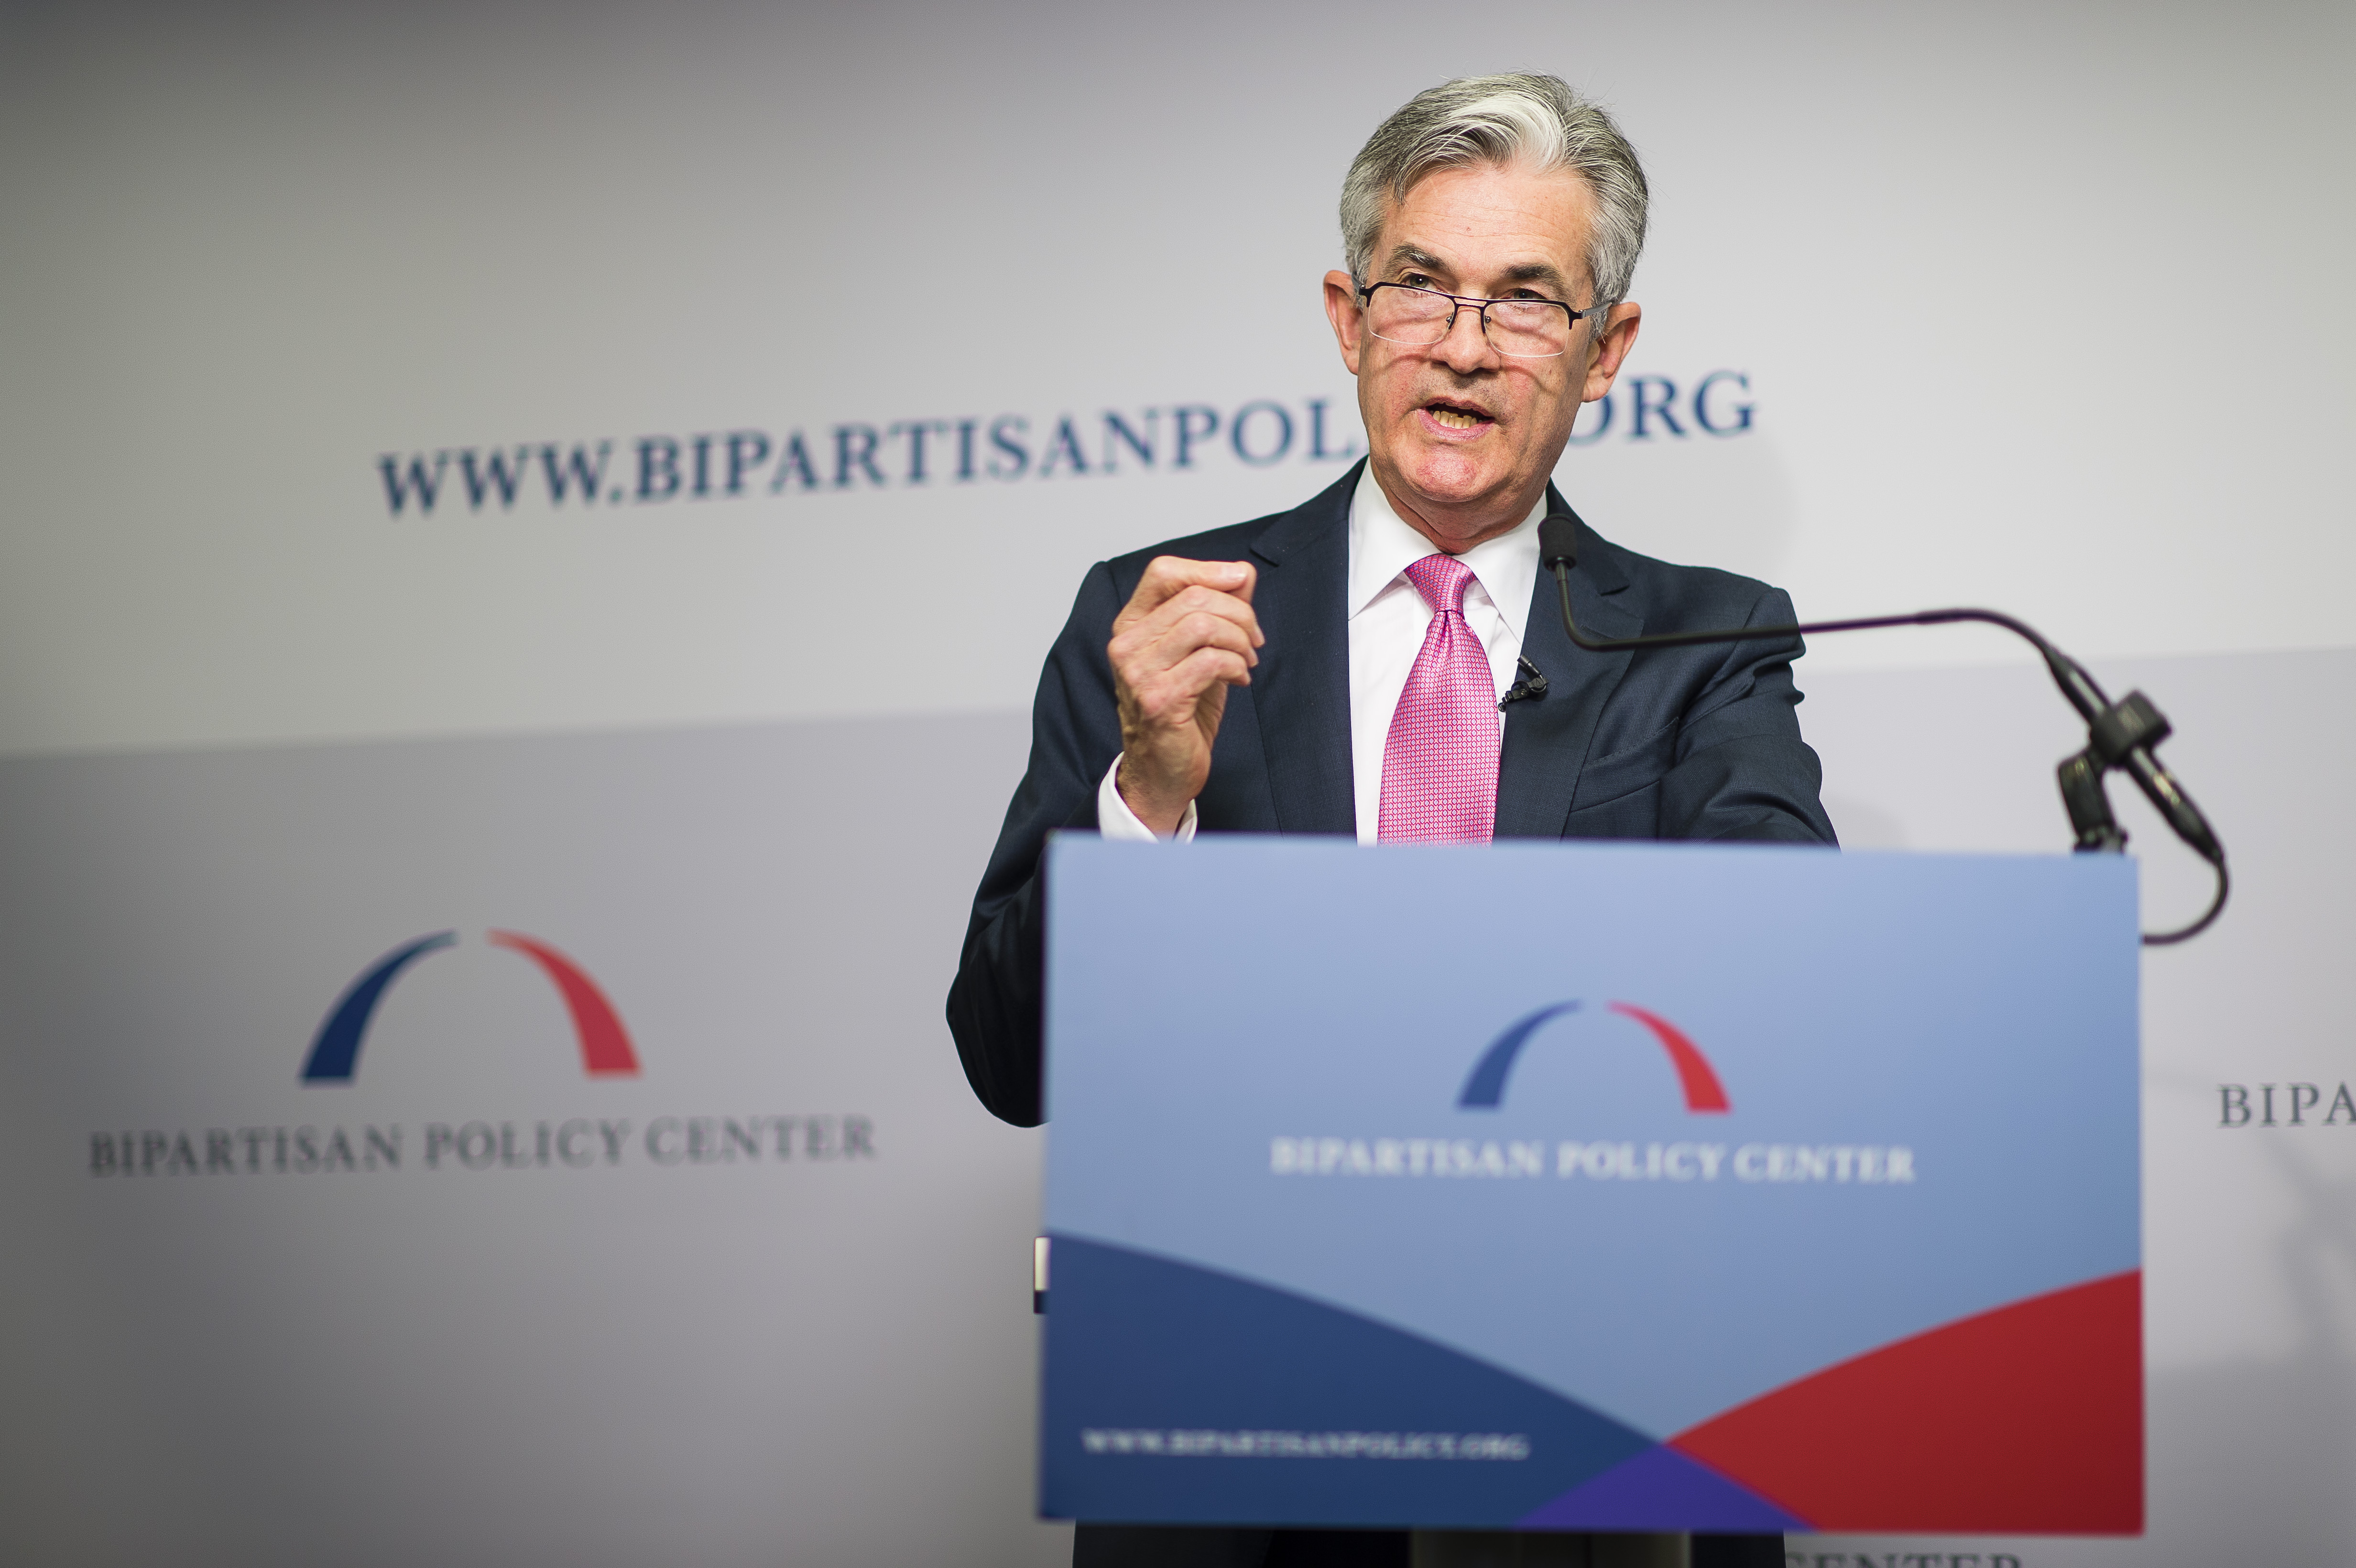 Jerome Powell speaking at the Bipartisan Policy Center in 2013.